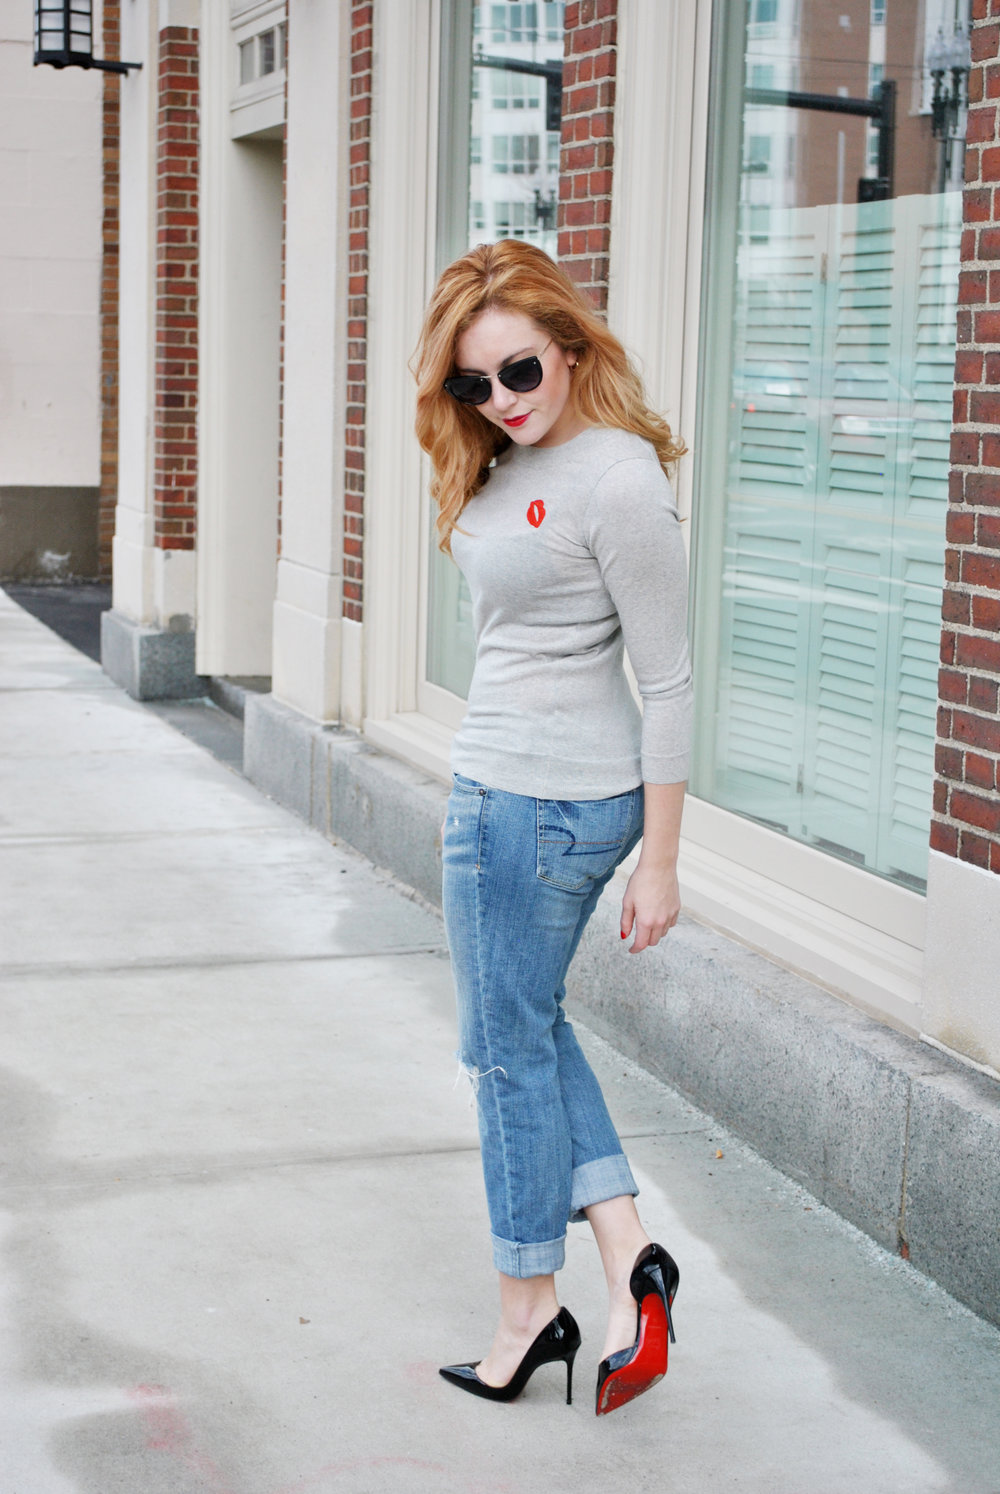 thoughtfulwish | j.crew, boyfriend jeans, lip patch, spring outfit, christian louboutin, louboutins, new england fashion, boston fashion, bosfashion